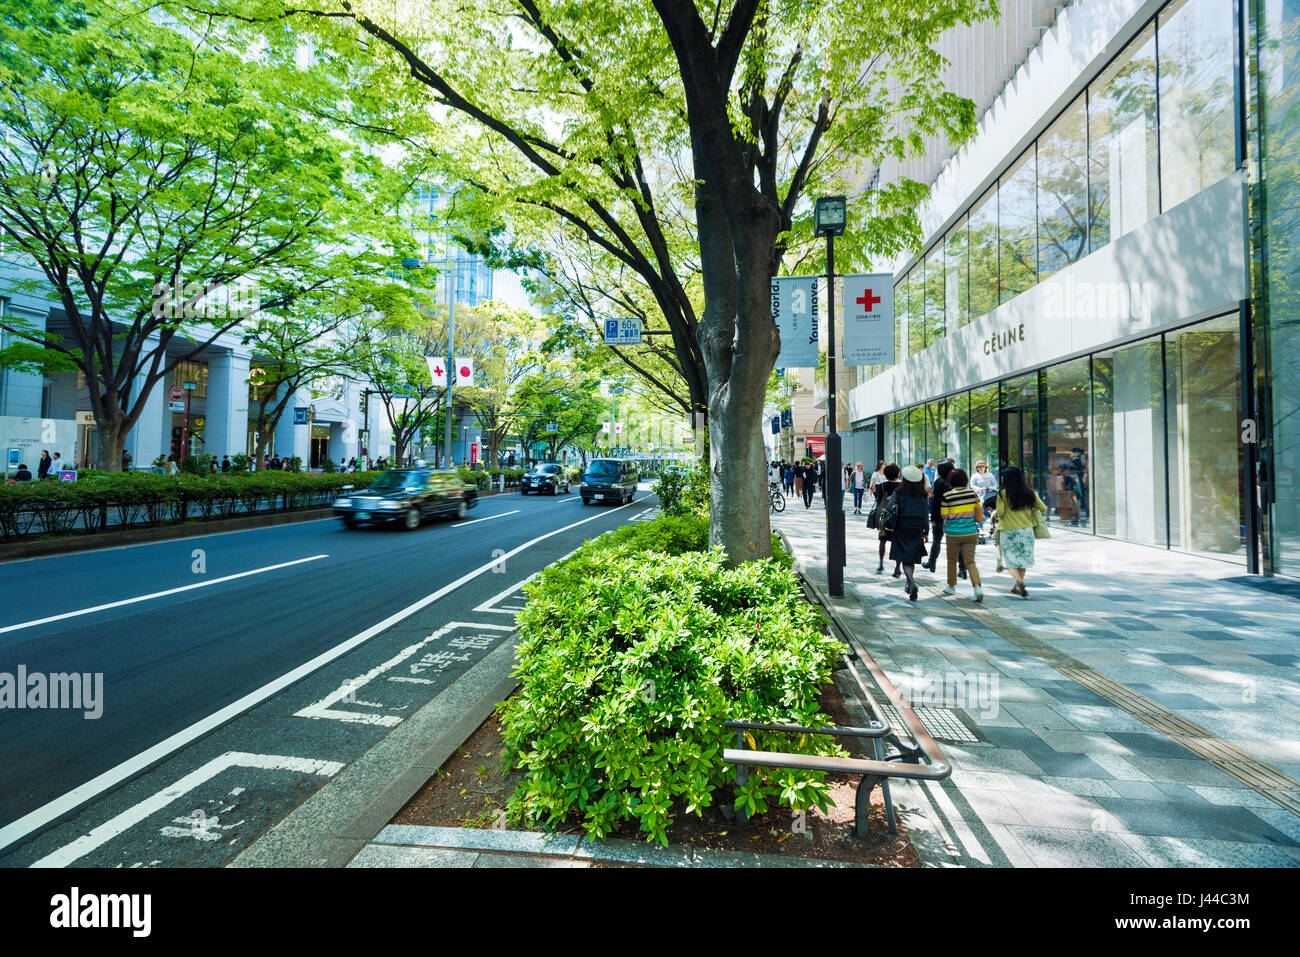 Omotesando shopping street showing the Celine Building and cafe in Tokyo, Japan - Stock Image